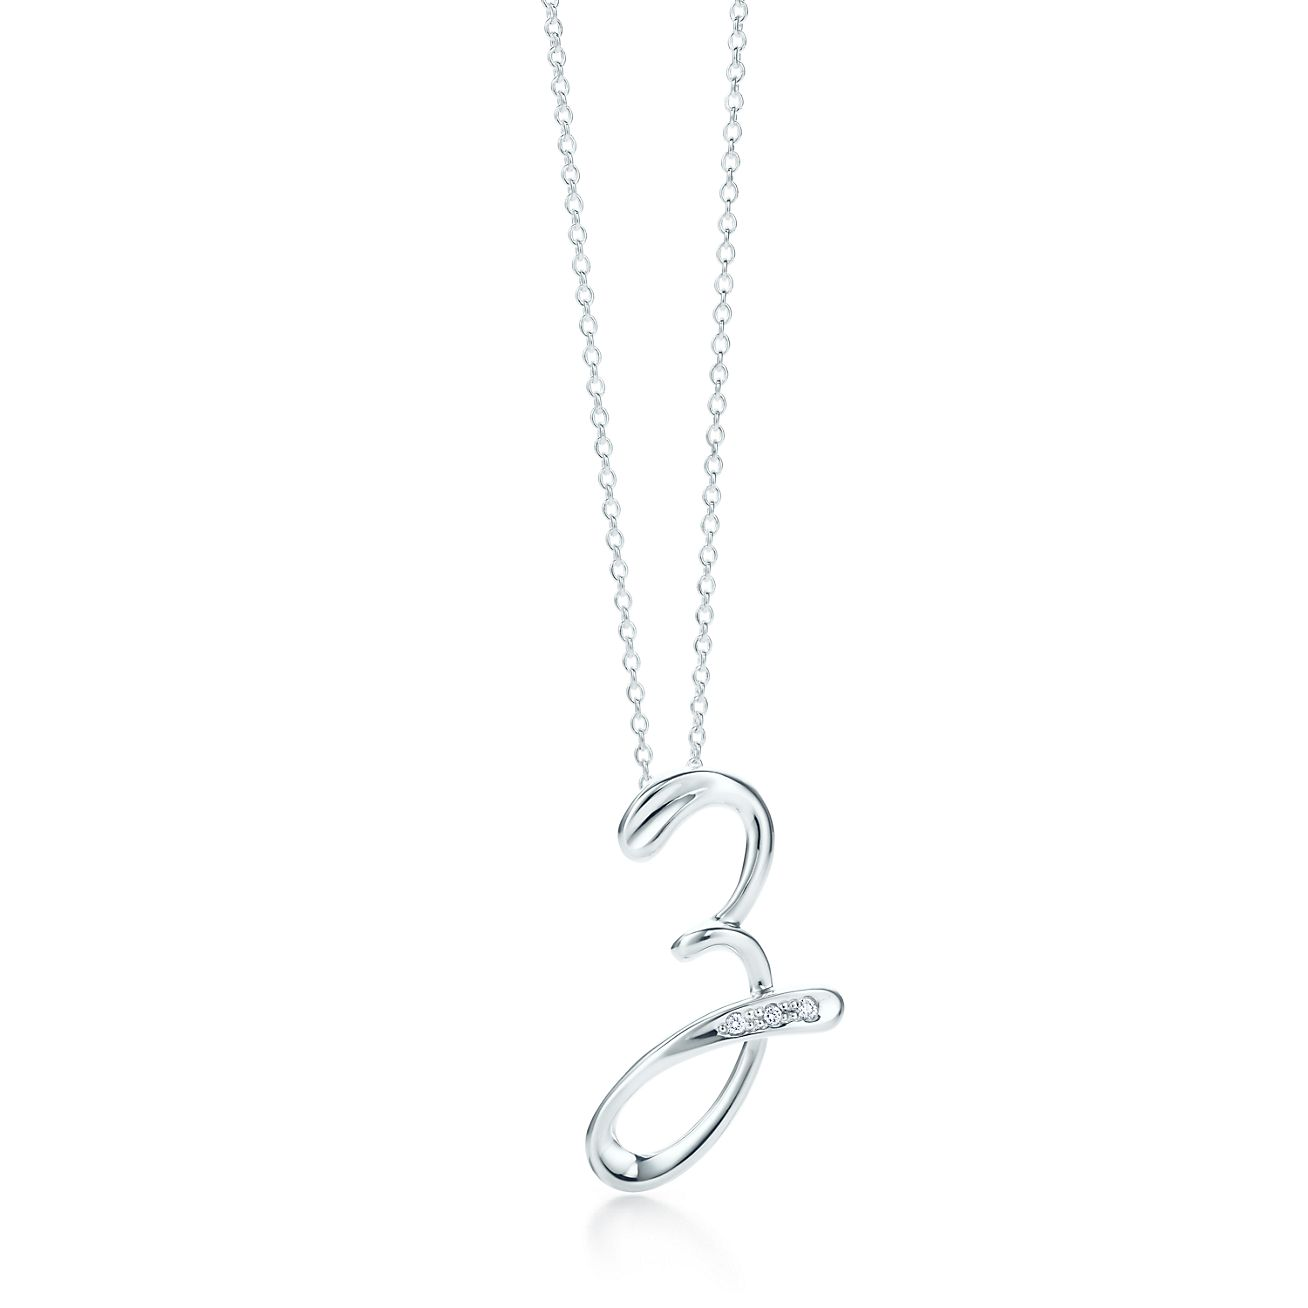 Elsa Peretti Alphabet pendant in silver with diamonds Letters A-Z available - Size Z Tiffany & Co.